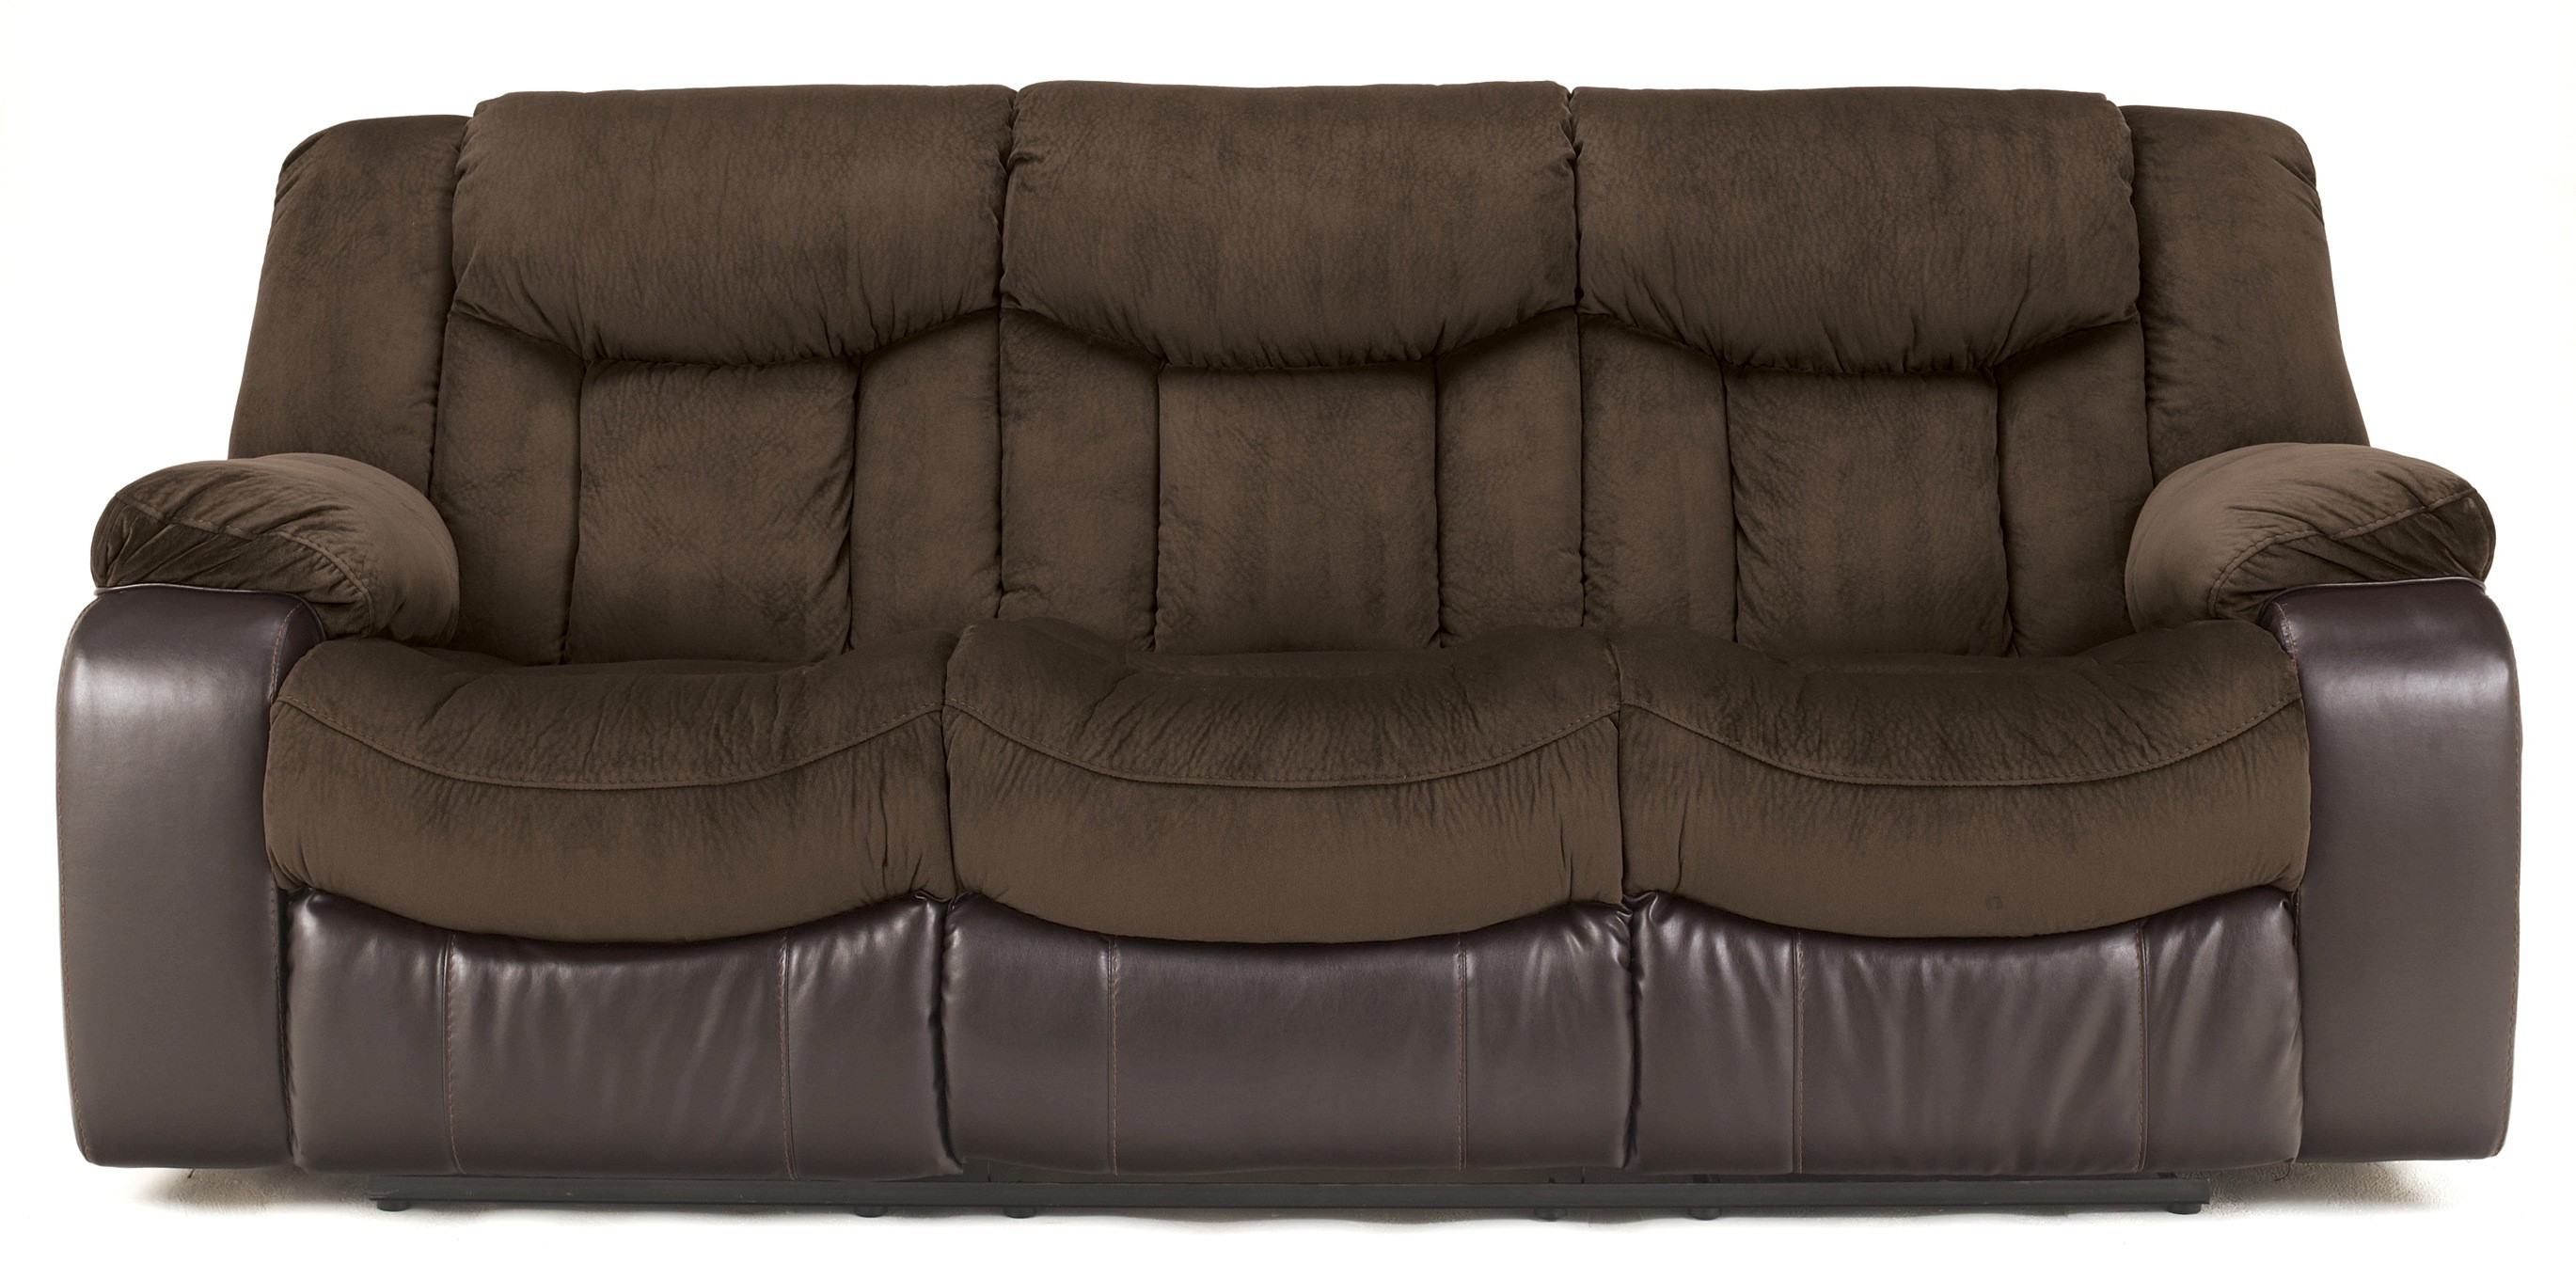 Tafton Java Reclining Sofa From Ashley 7920288 Coleman Furniture